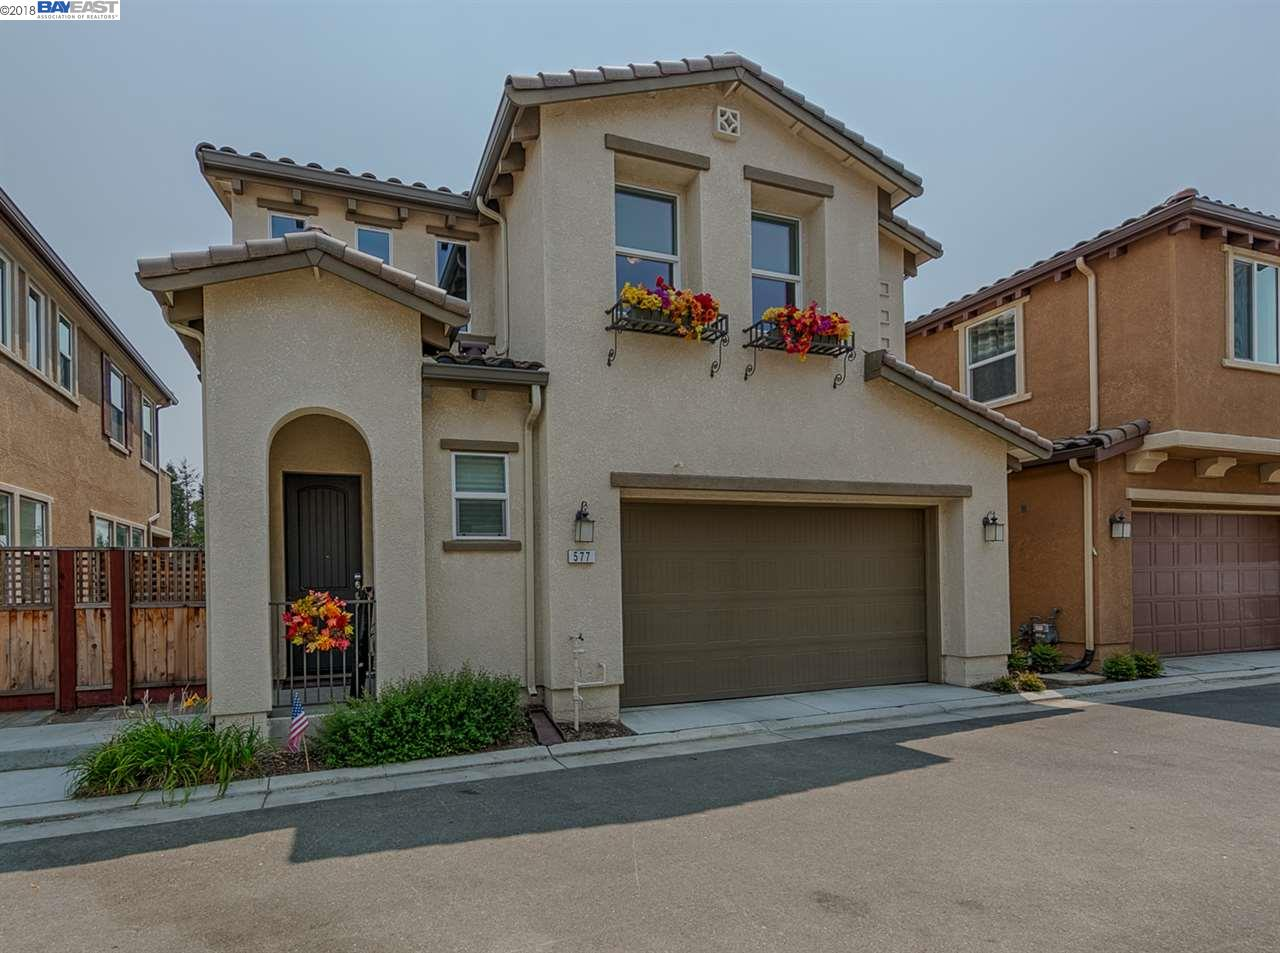 577 Misty Way | LIVERMORE | 1640 | 94550